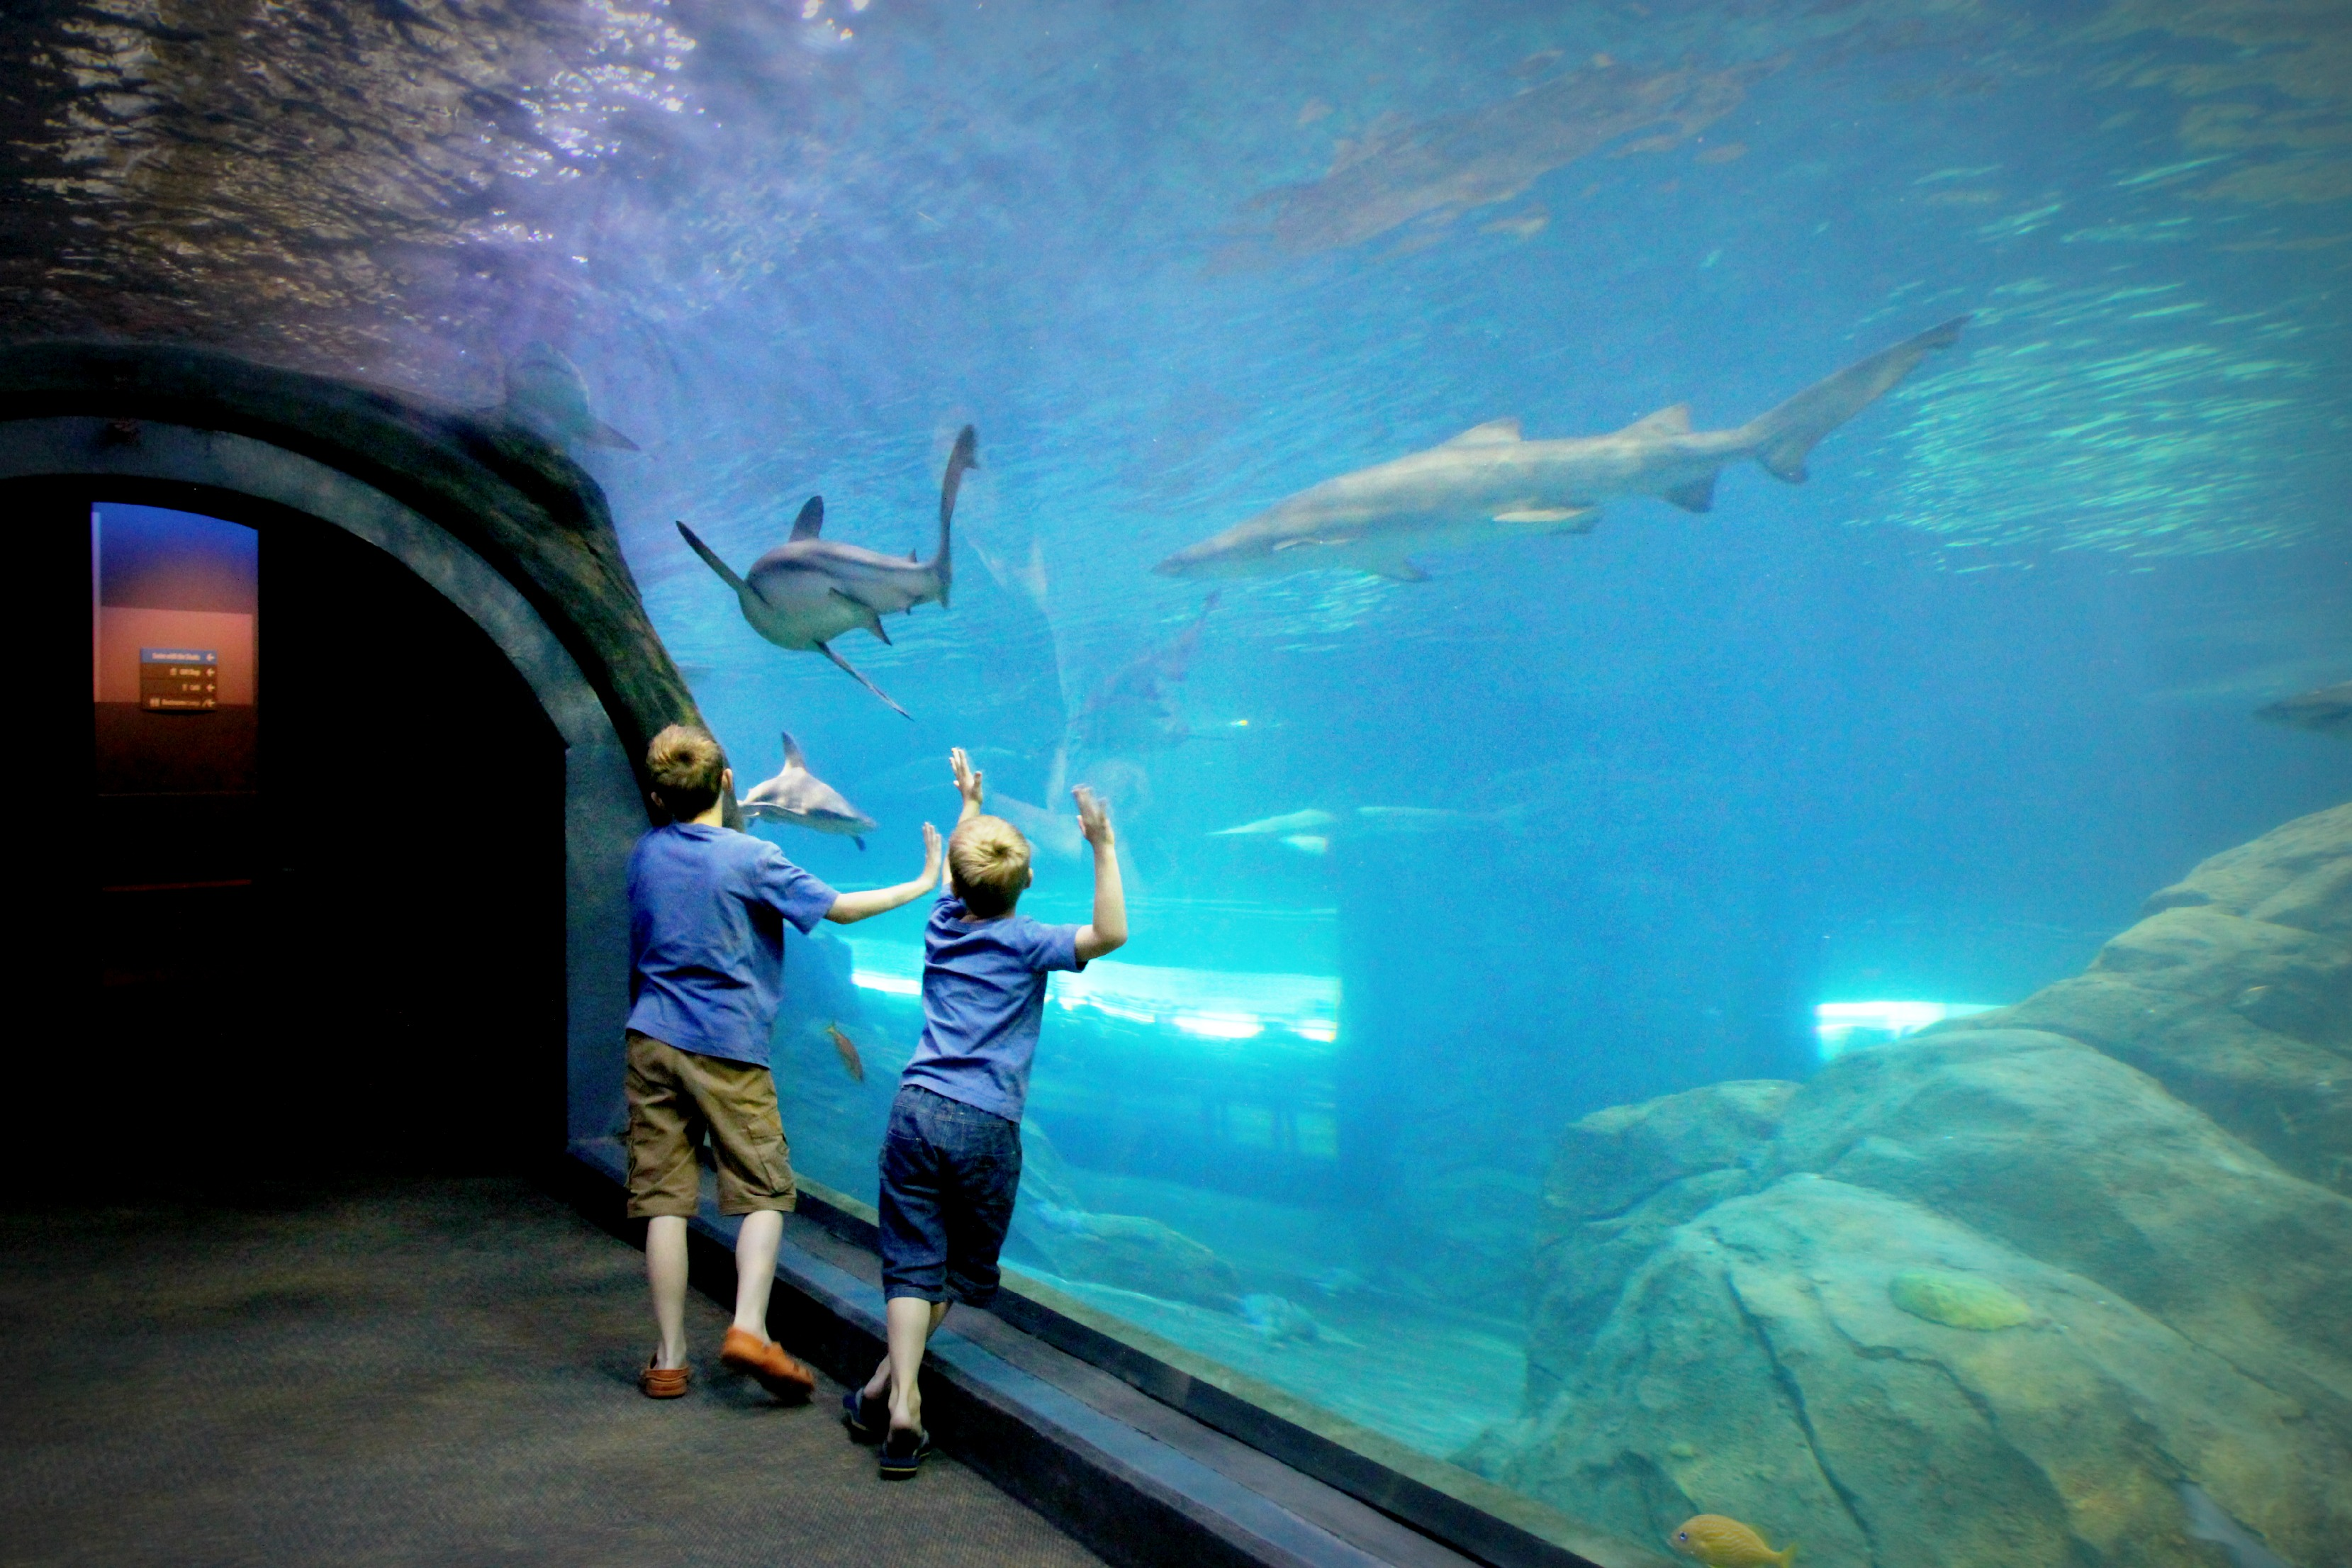 Aquarium adventure aquarium adventure cleveland hot list for The camden